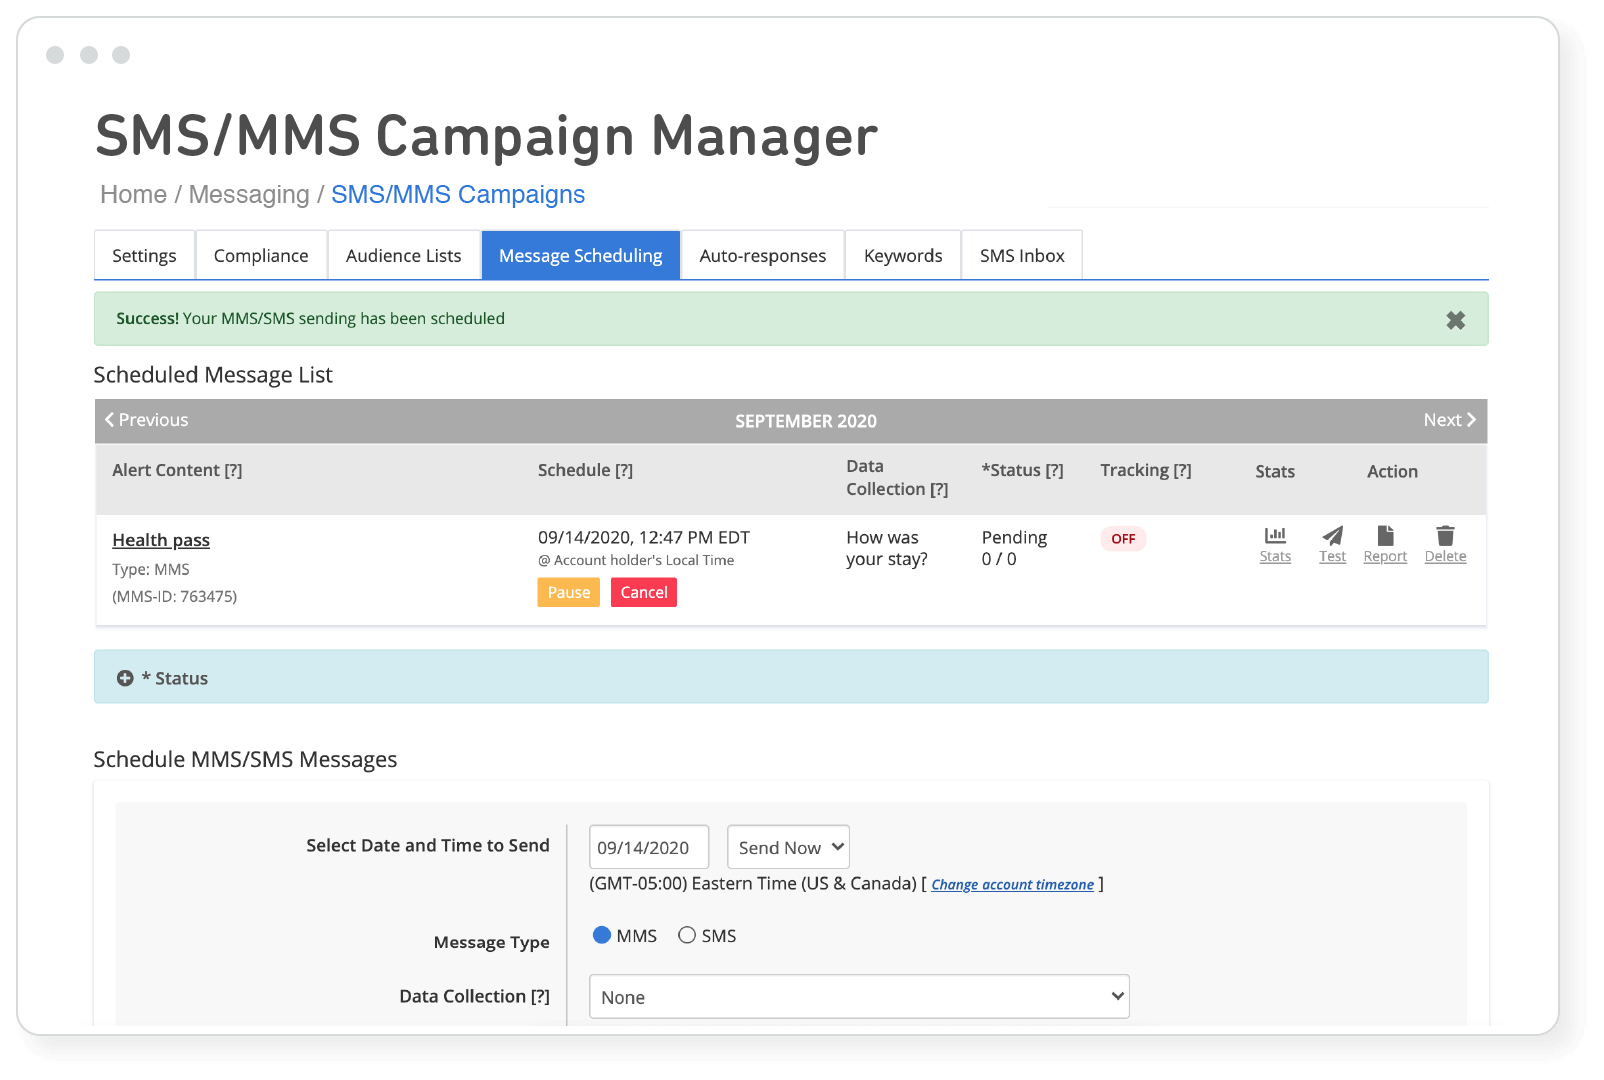 SMS/MMS Campaign Manager